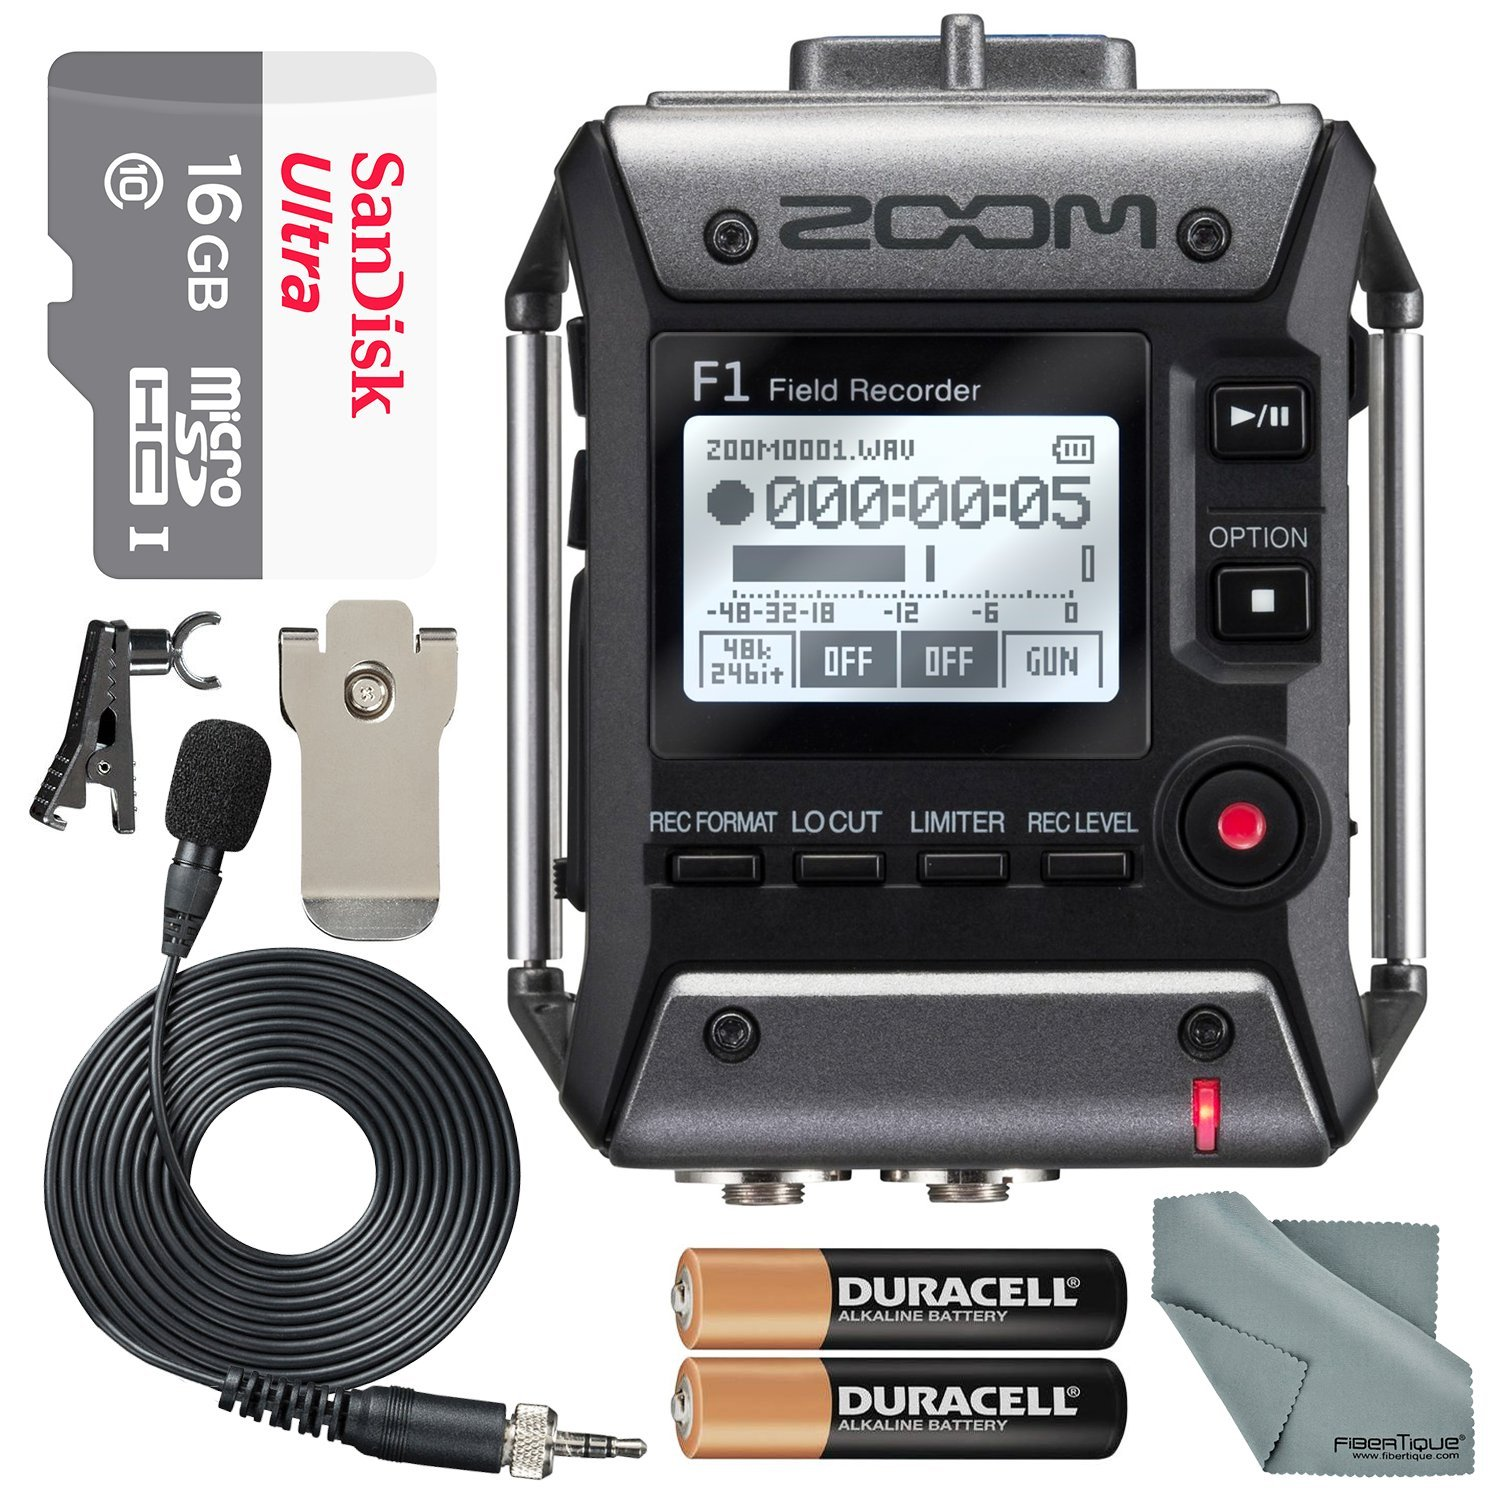 Audio Mics: Zoom: F1-LP: Zoom F1 Field Recorder with Lavalier Microphone F1LP Package with 16GB MicroSD Card and Photo Savings Basic Bundle